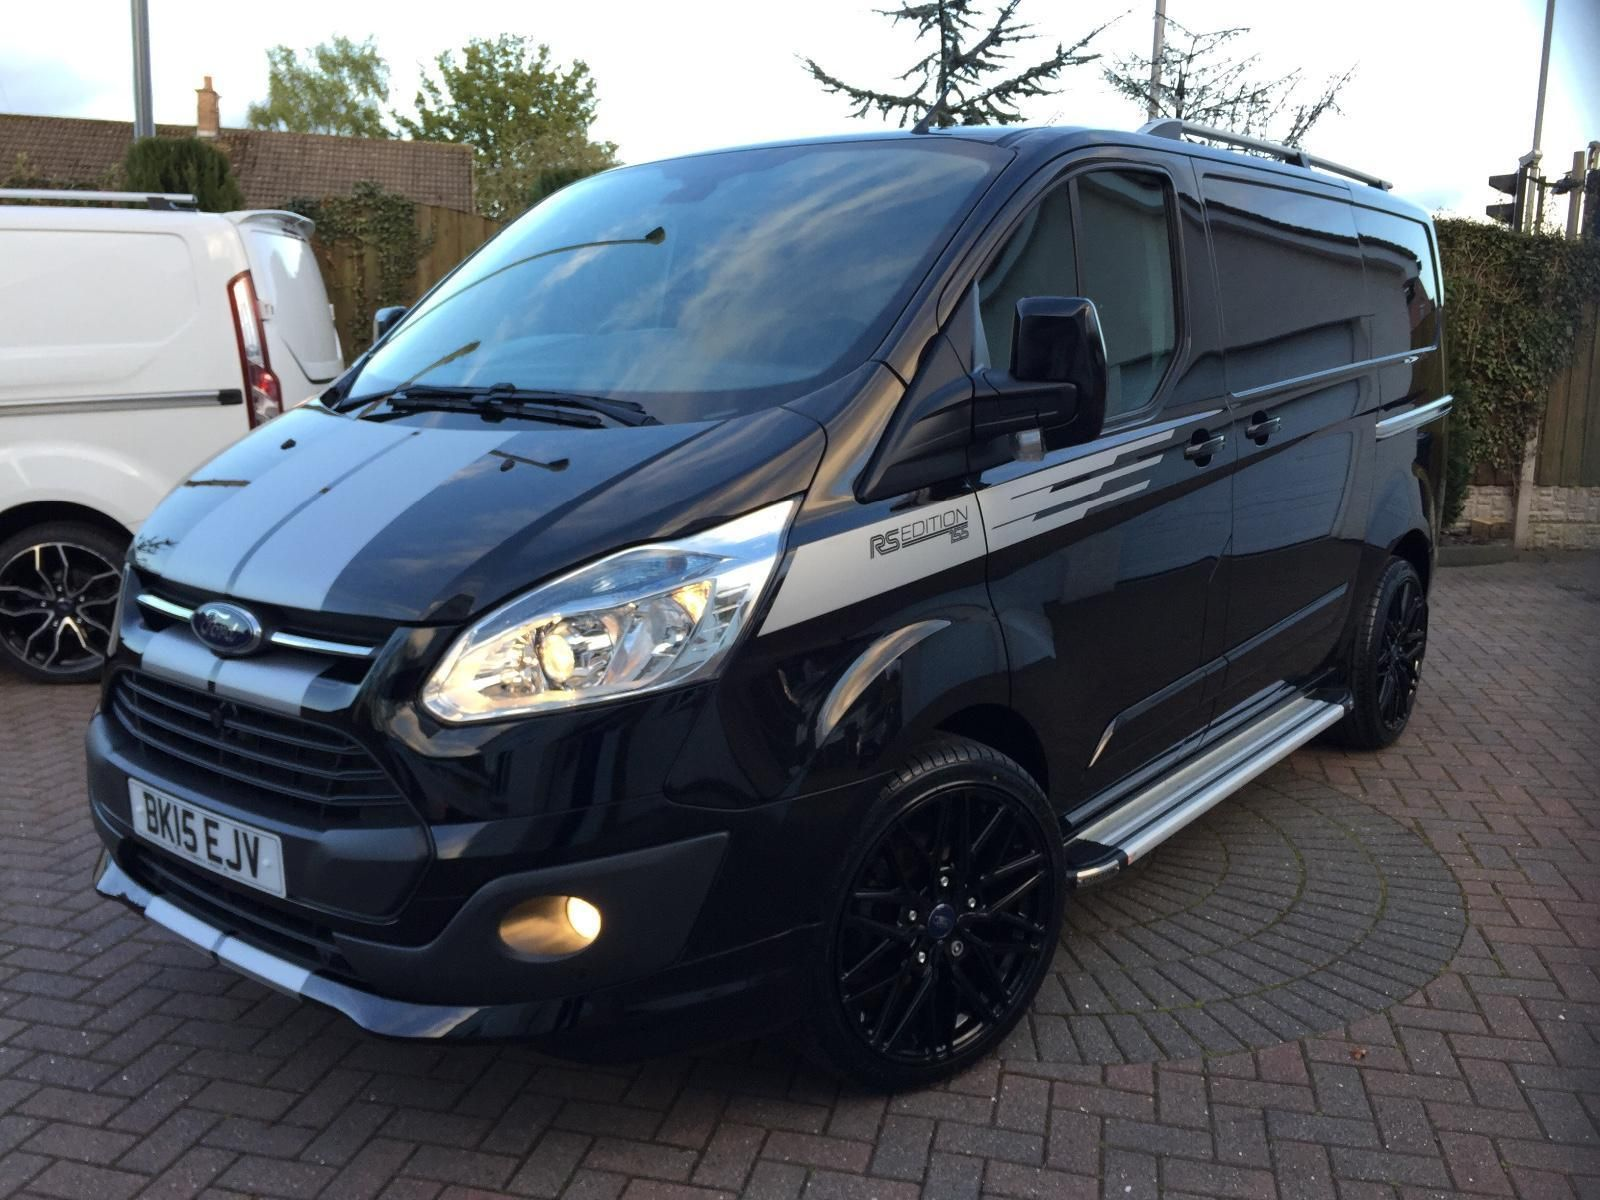 "2015/15 FORD TRANSIT CUSTOM LIMITED 155PS RS EDITION SWB ""NO VAT"" in Cars, Motorcycles & Vehicles, Commercial Vehicles, Vans/Pickups 